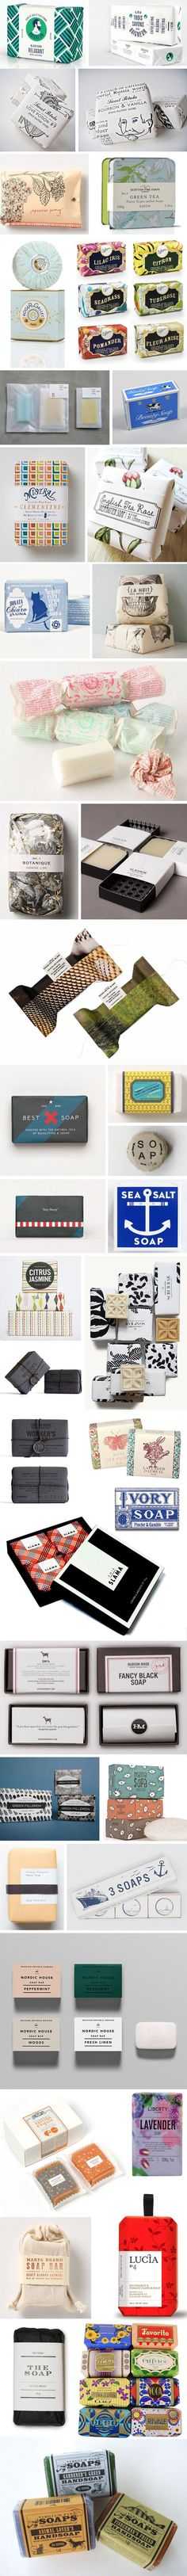 Lovely Soaps! Förpackad -Blogg om Förpackningsdesign, Förpackningar, Grafisk Design - CAP&Design (Butter Packaging Ideas)